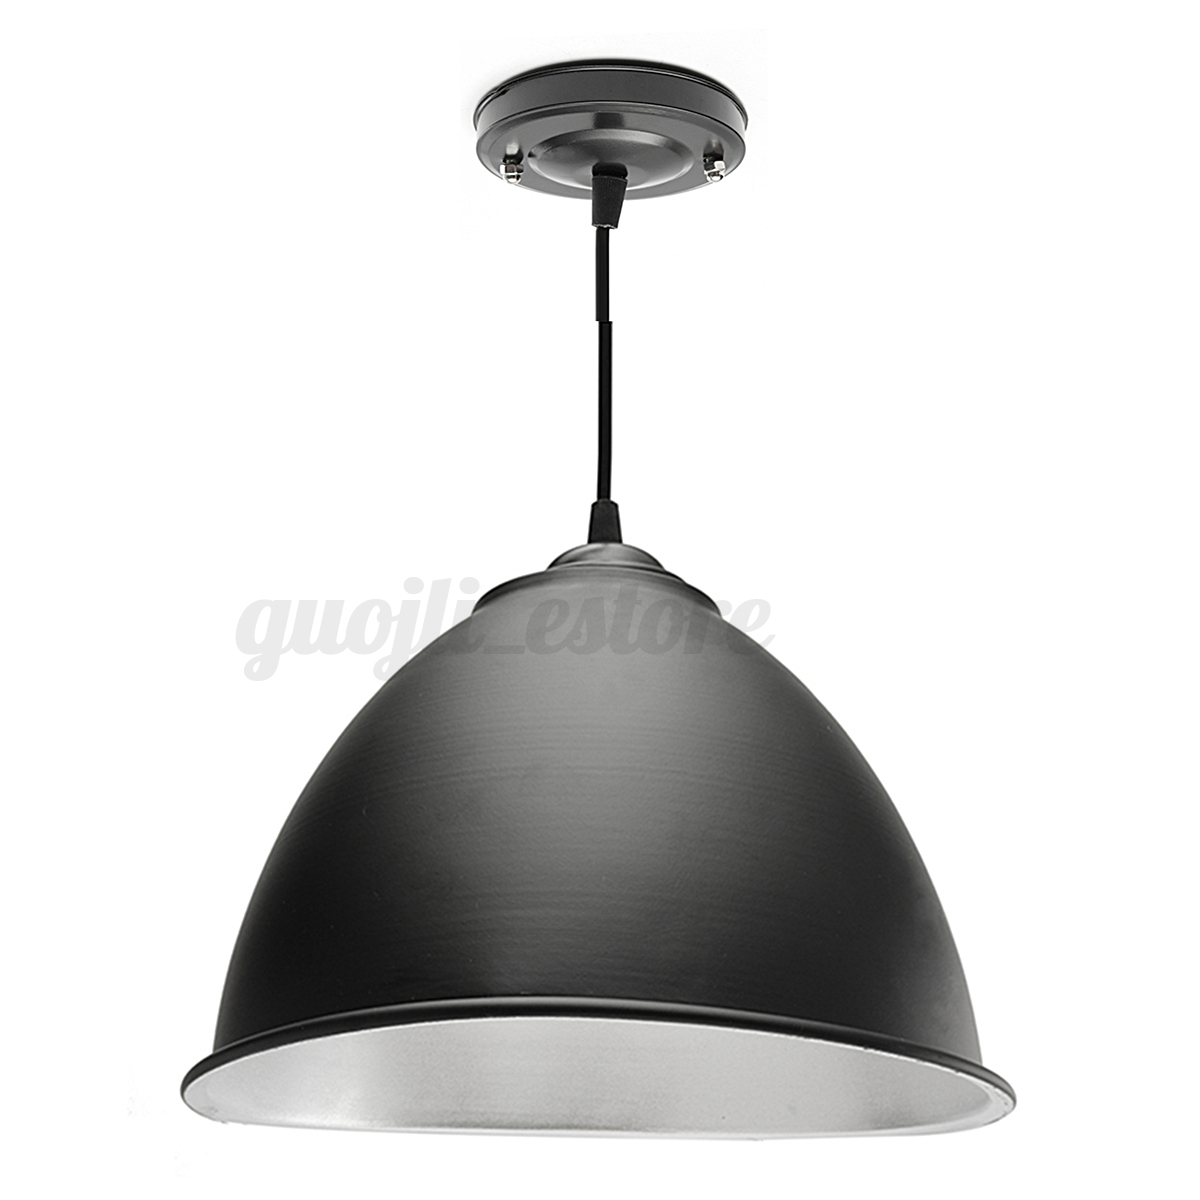 Industrial Style Light Fixtures Home Industrial Style Aluminum Ceiling Light Pendant Chandelier